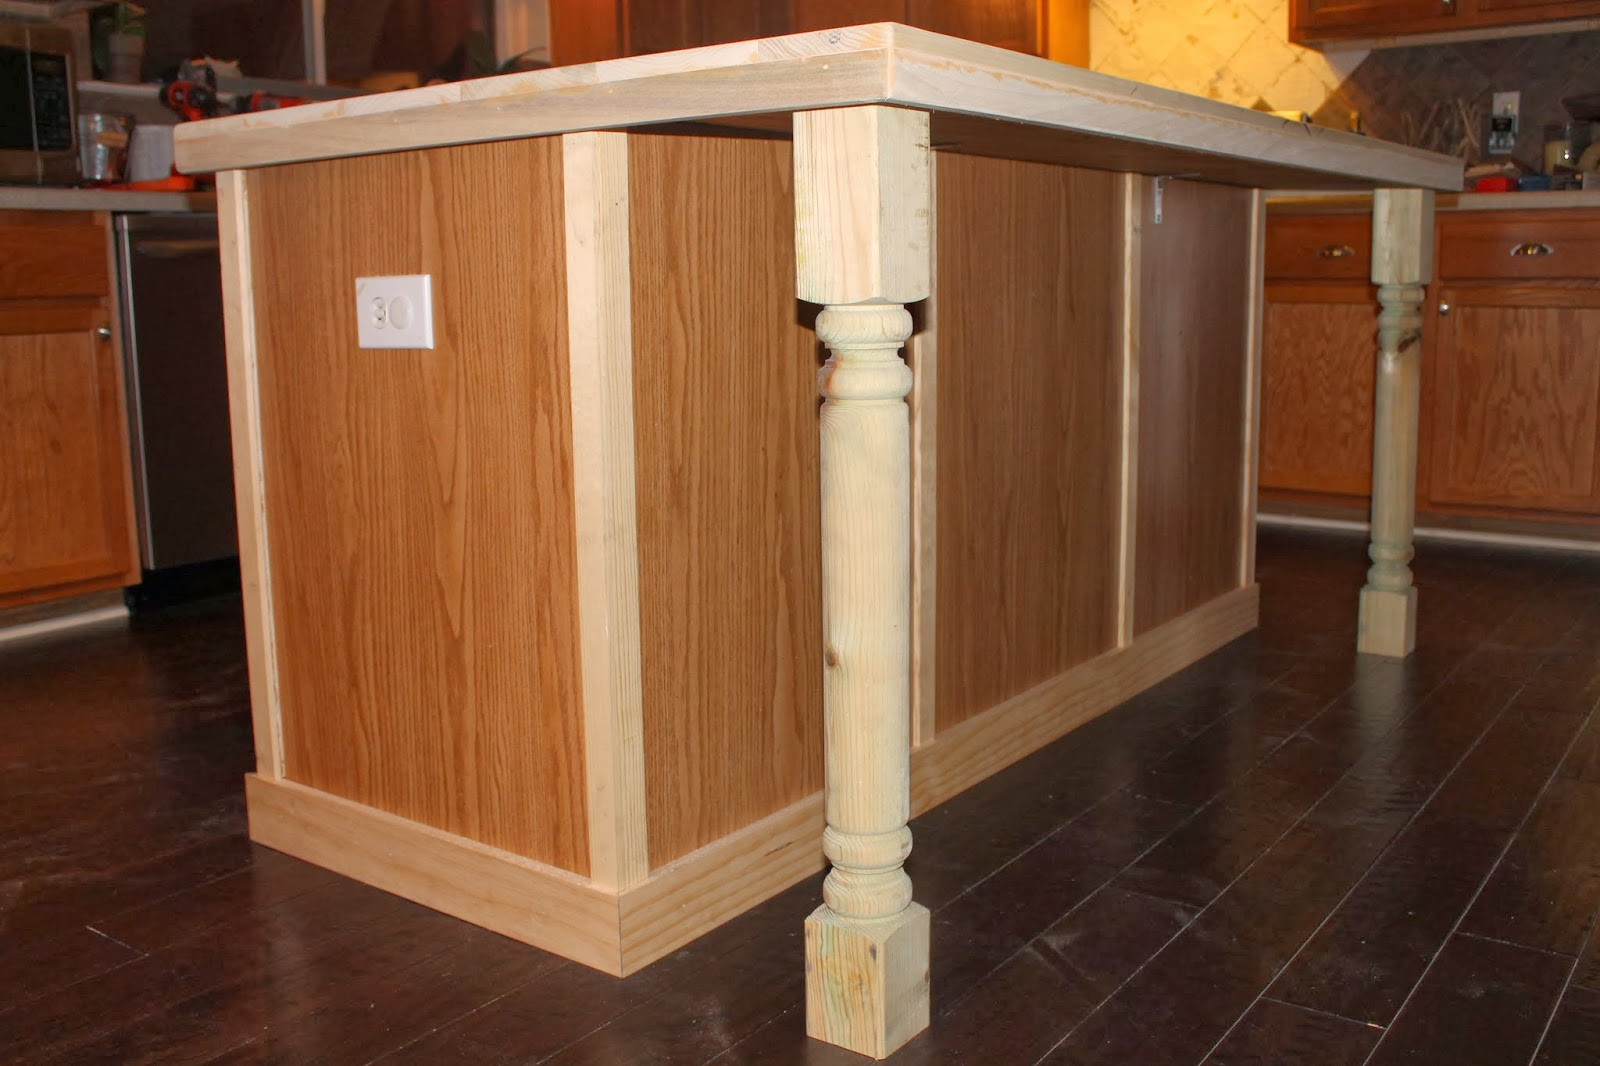 Kitchen Cabinets With Legs Pictures For Walls The Ragged Wren Remodel